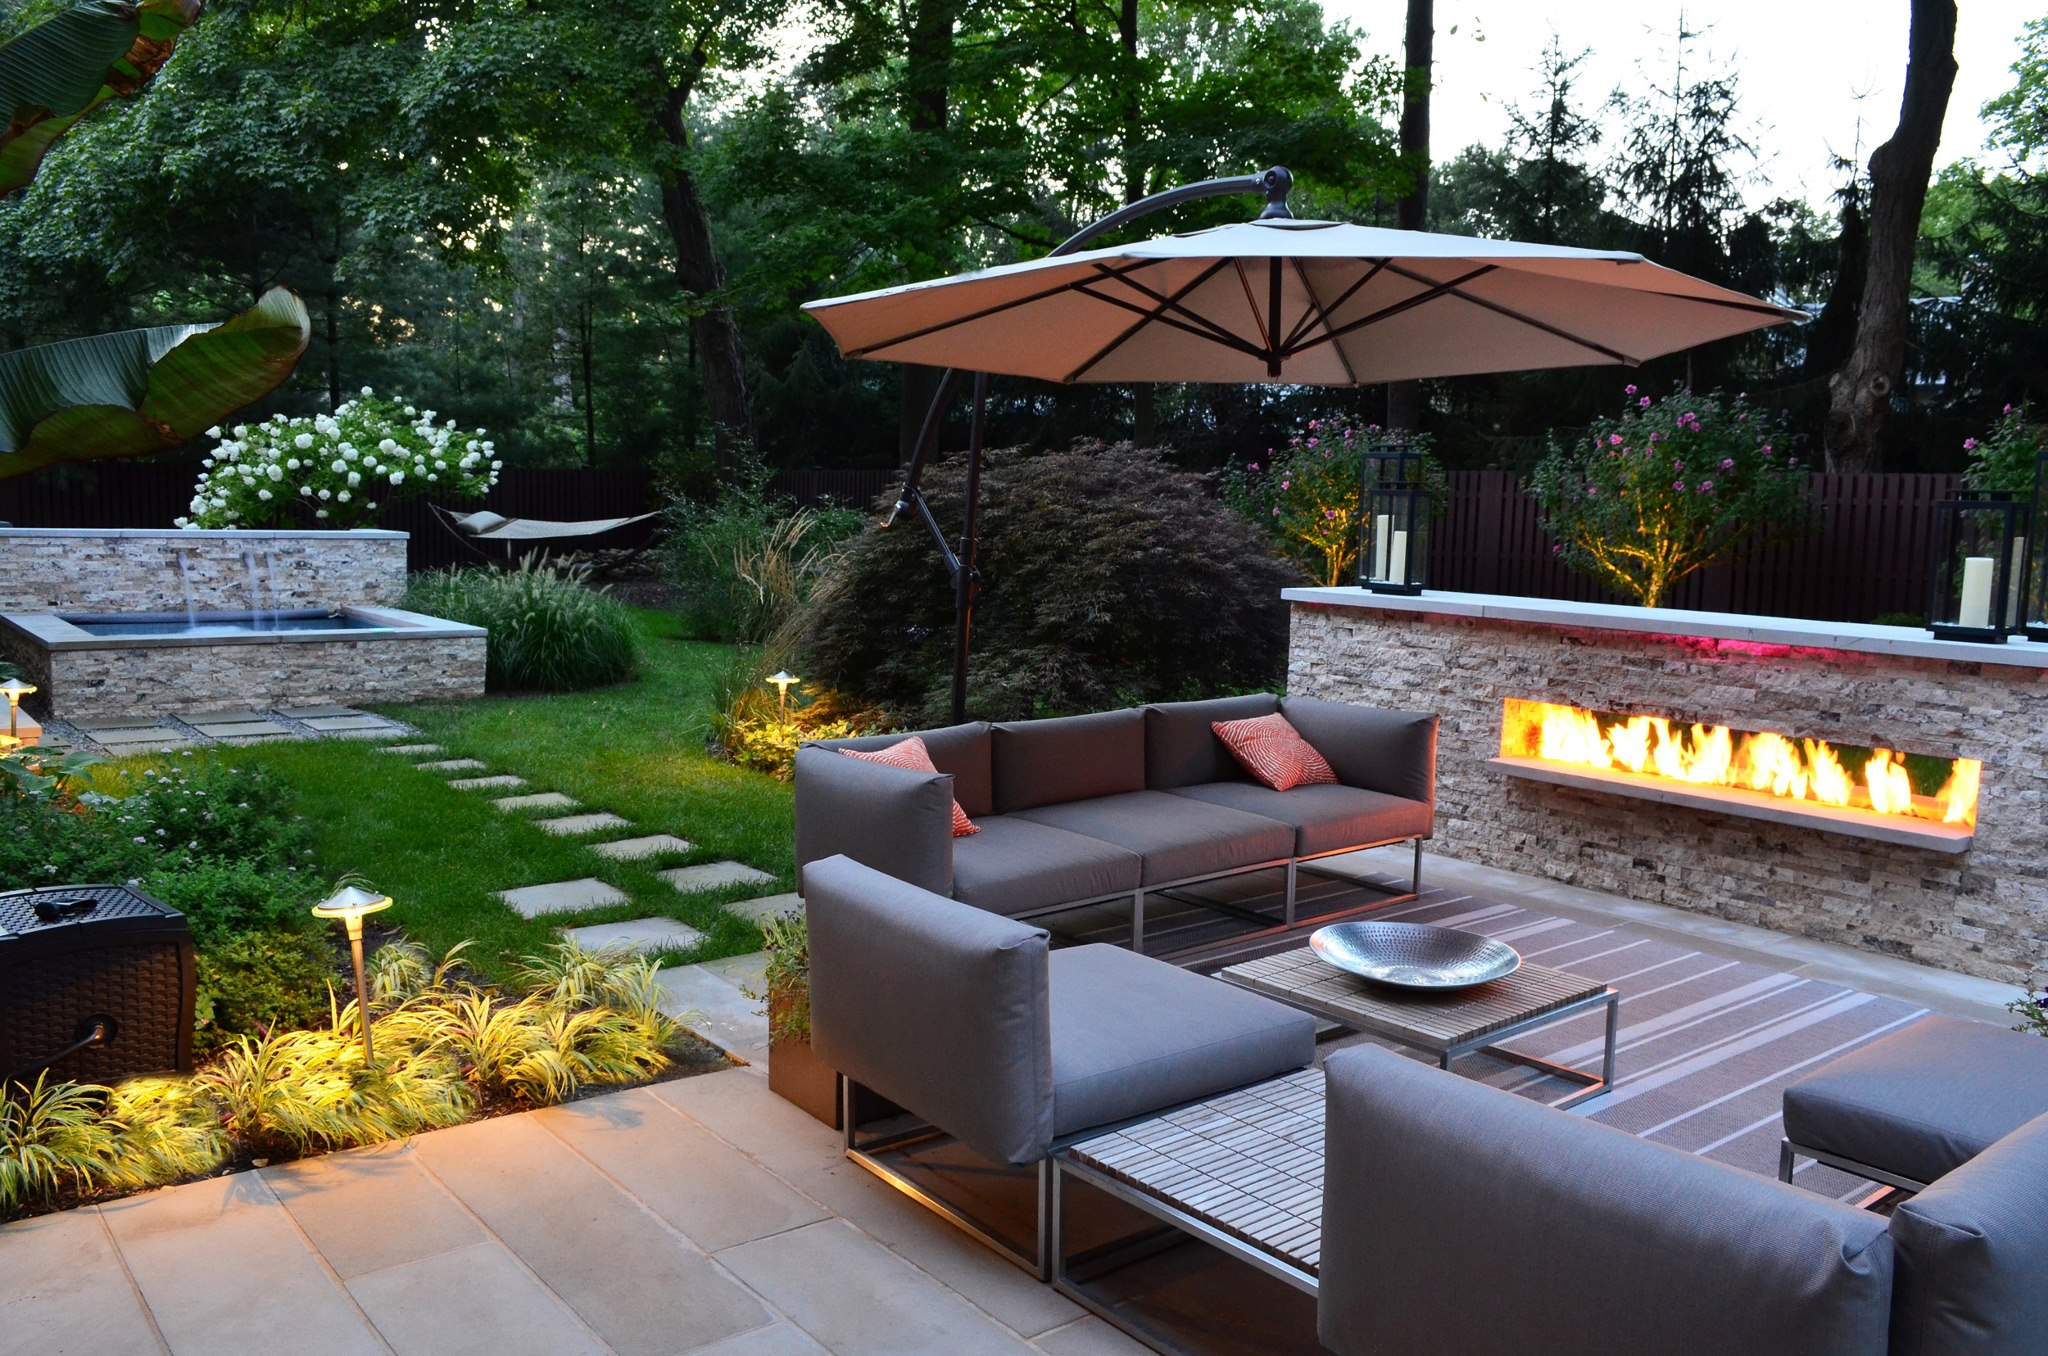 The modern landscaping from cipriano landscape design created a